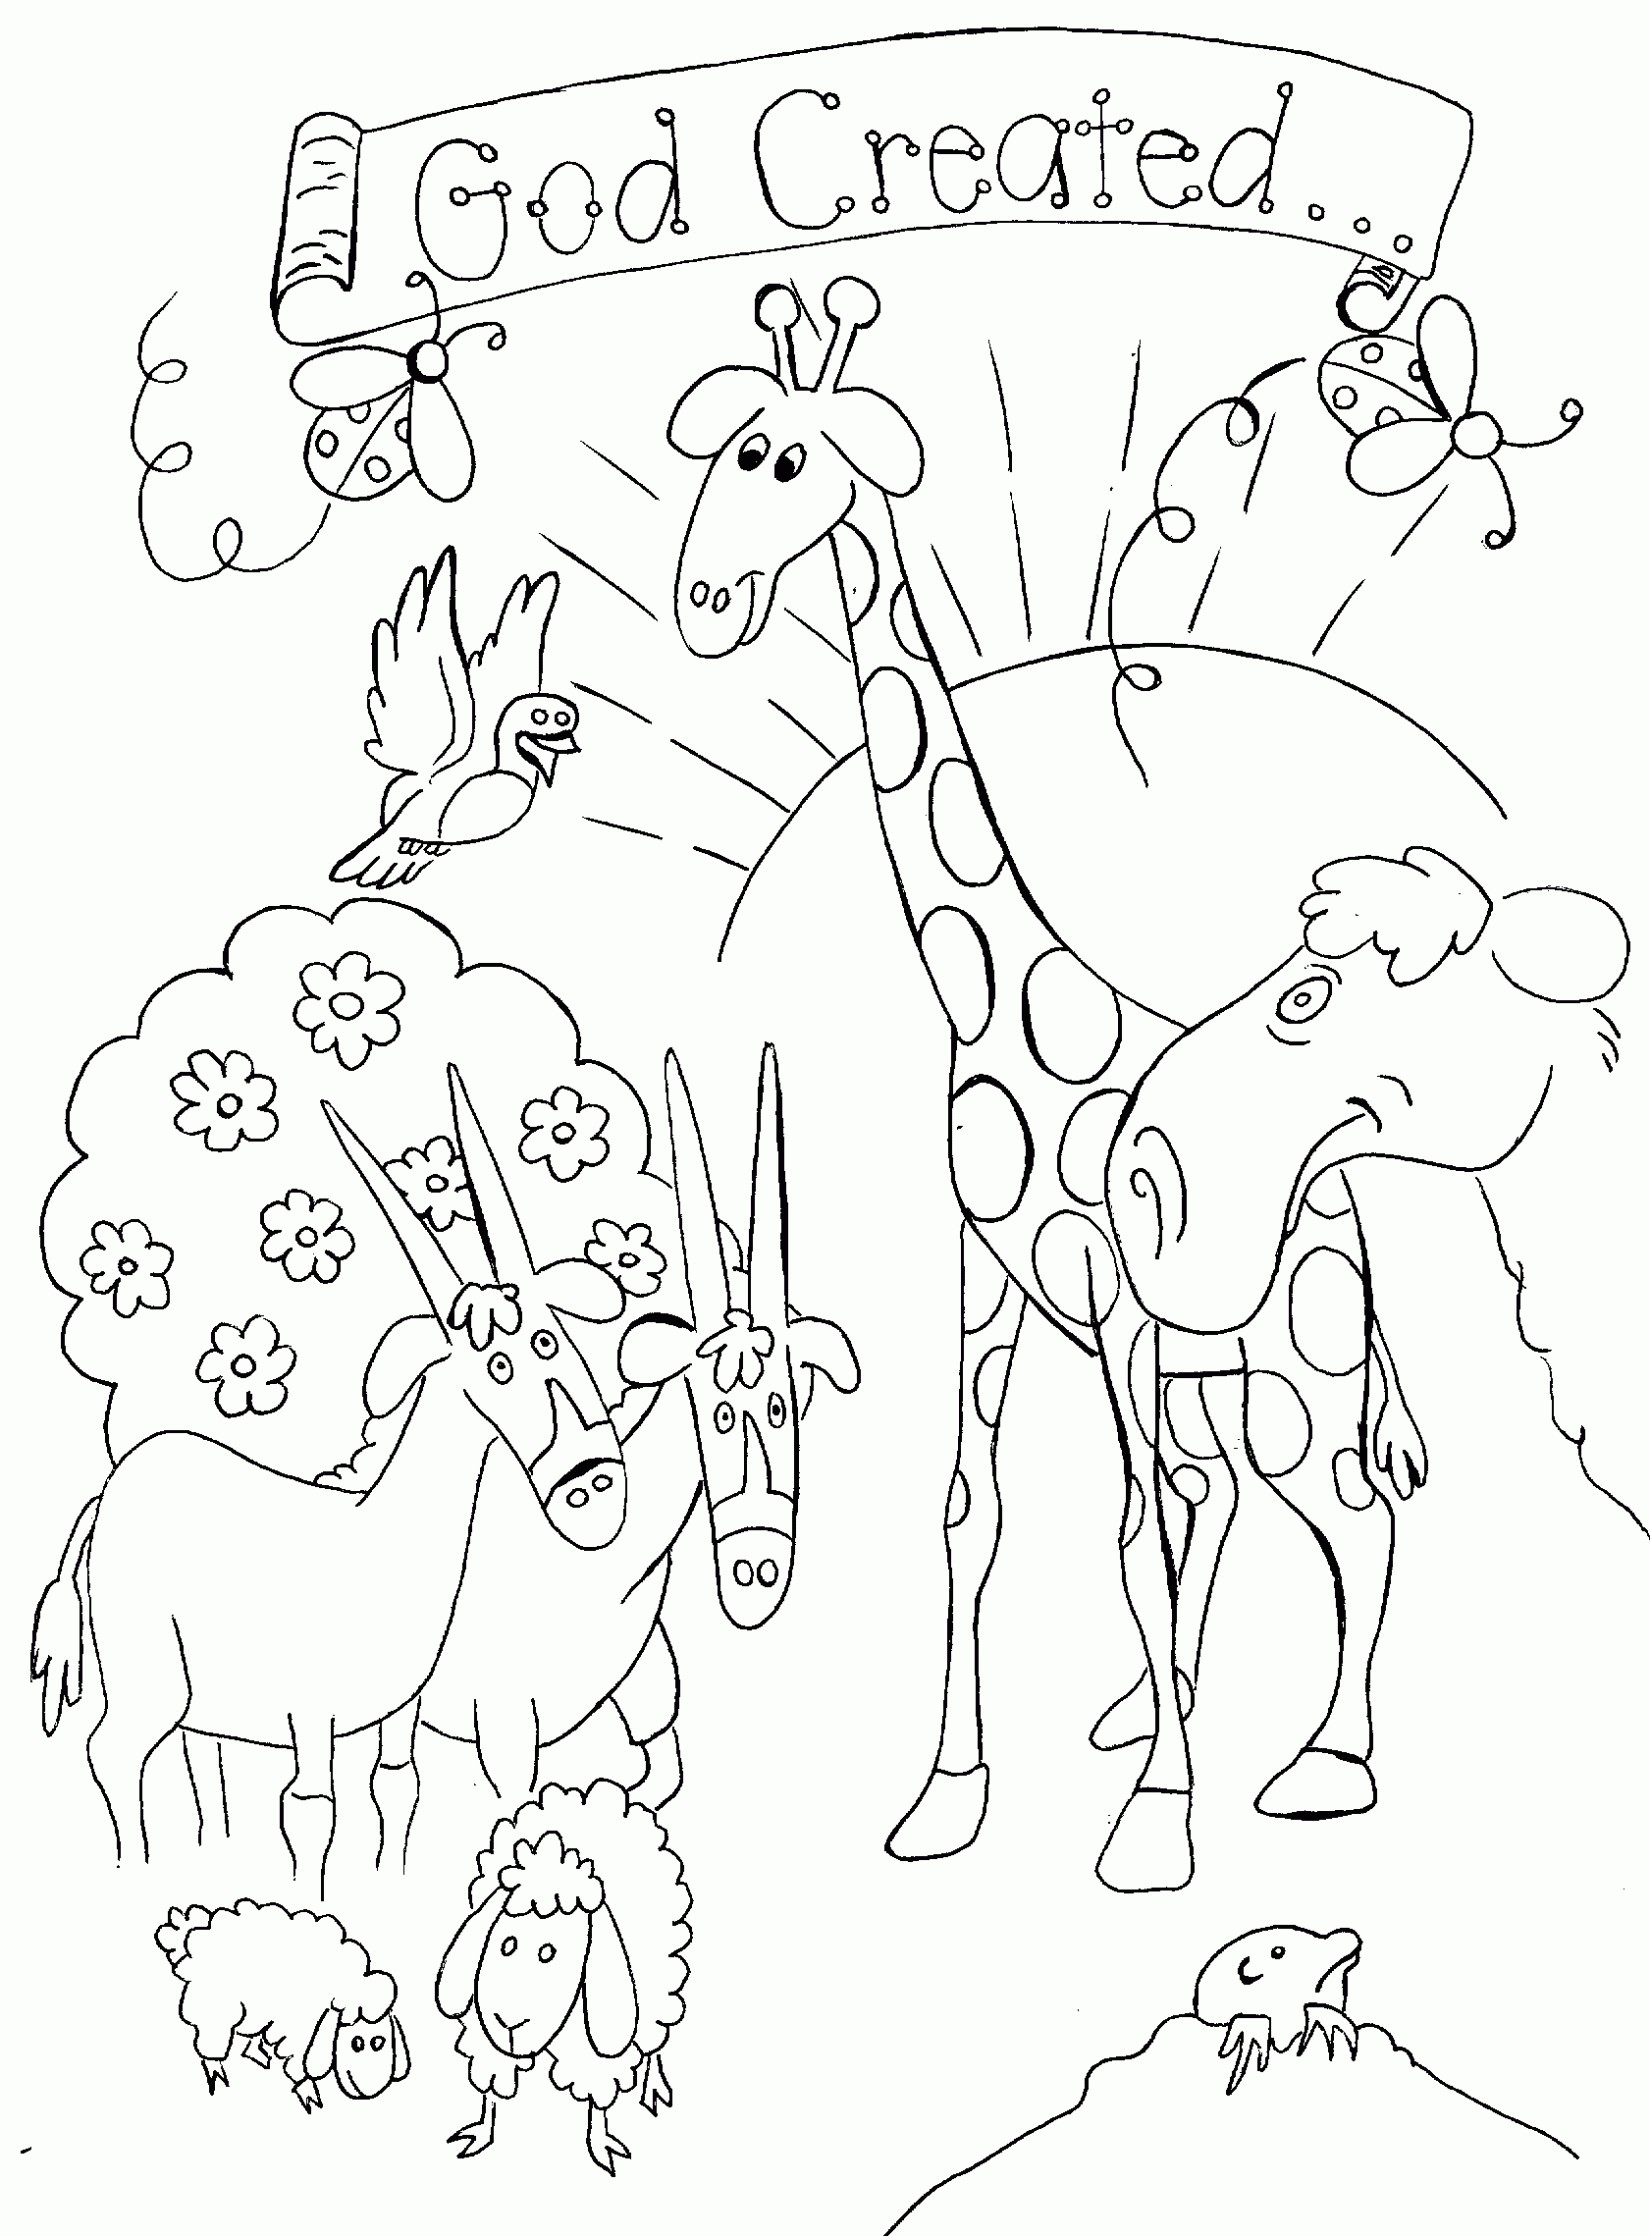 The Golden Calf Coloring Page Coloring Printable Bible Coloring Pages Sheets For Children Kidsee